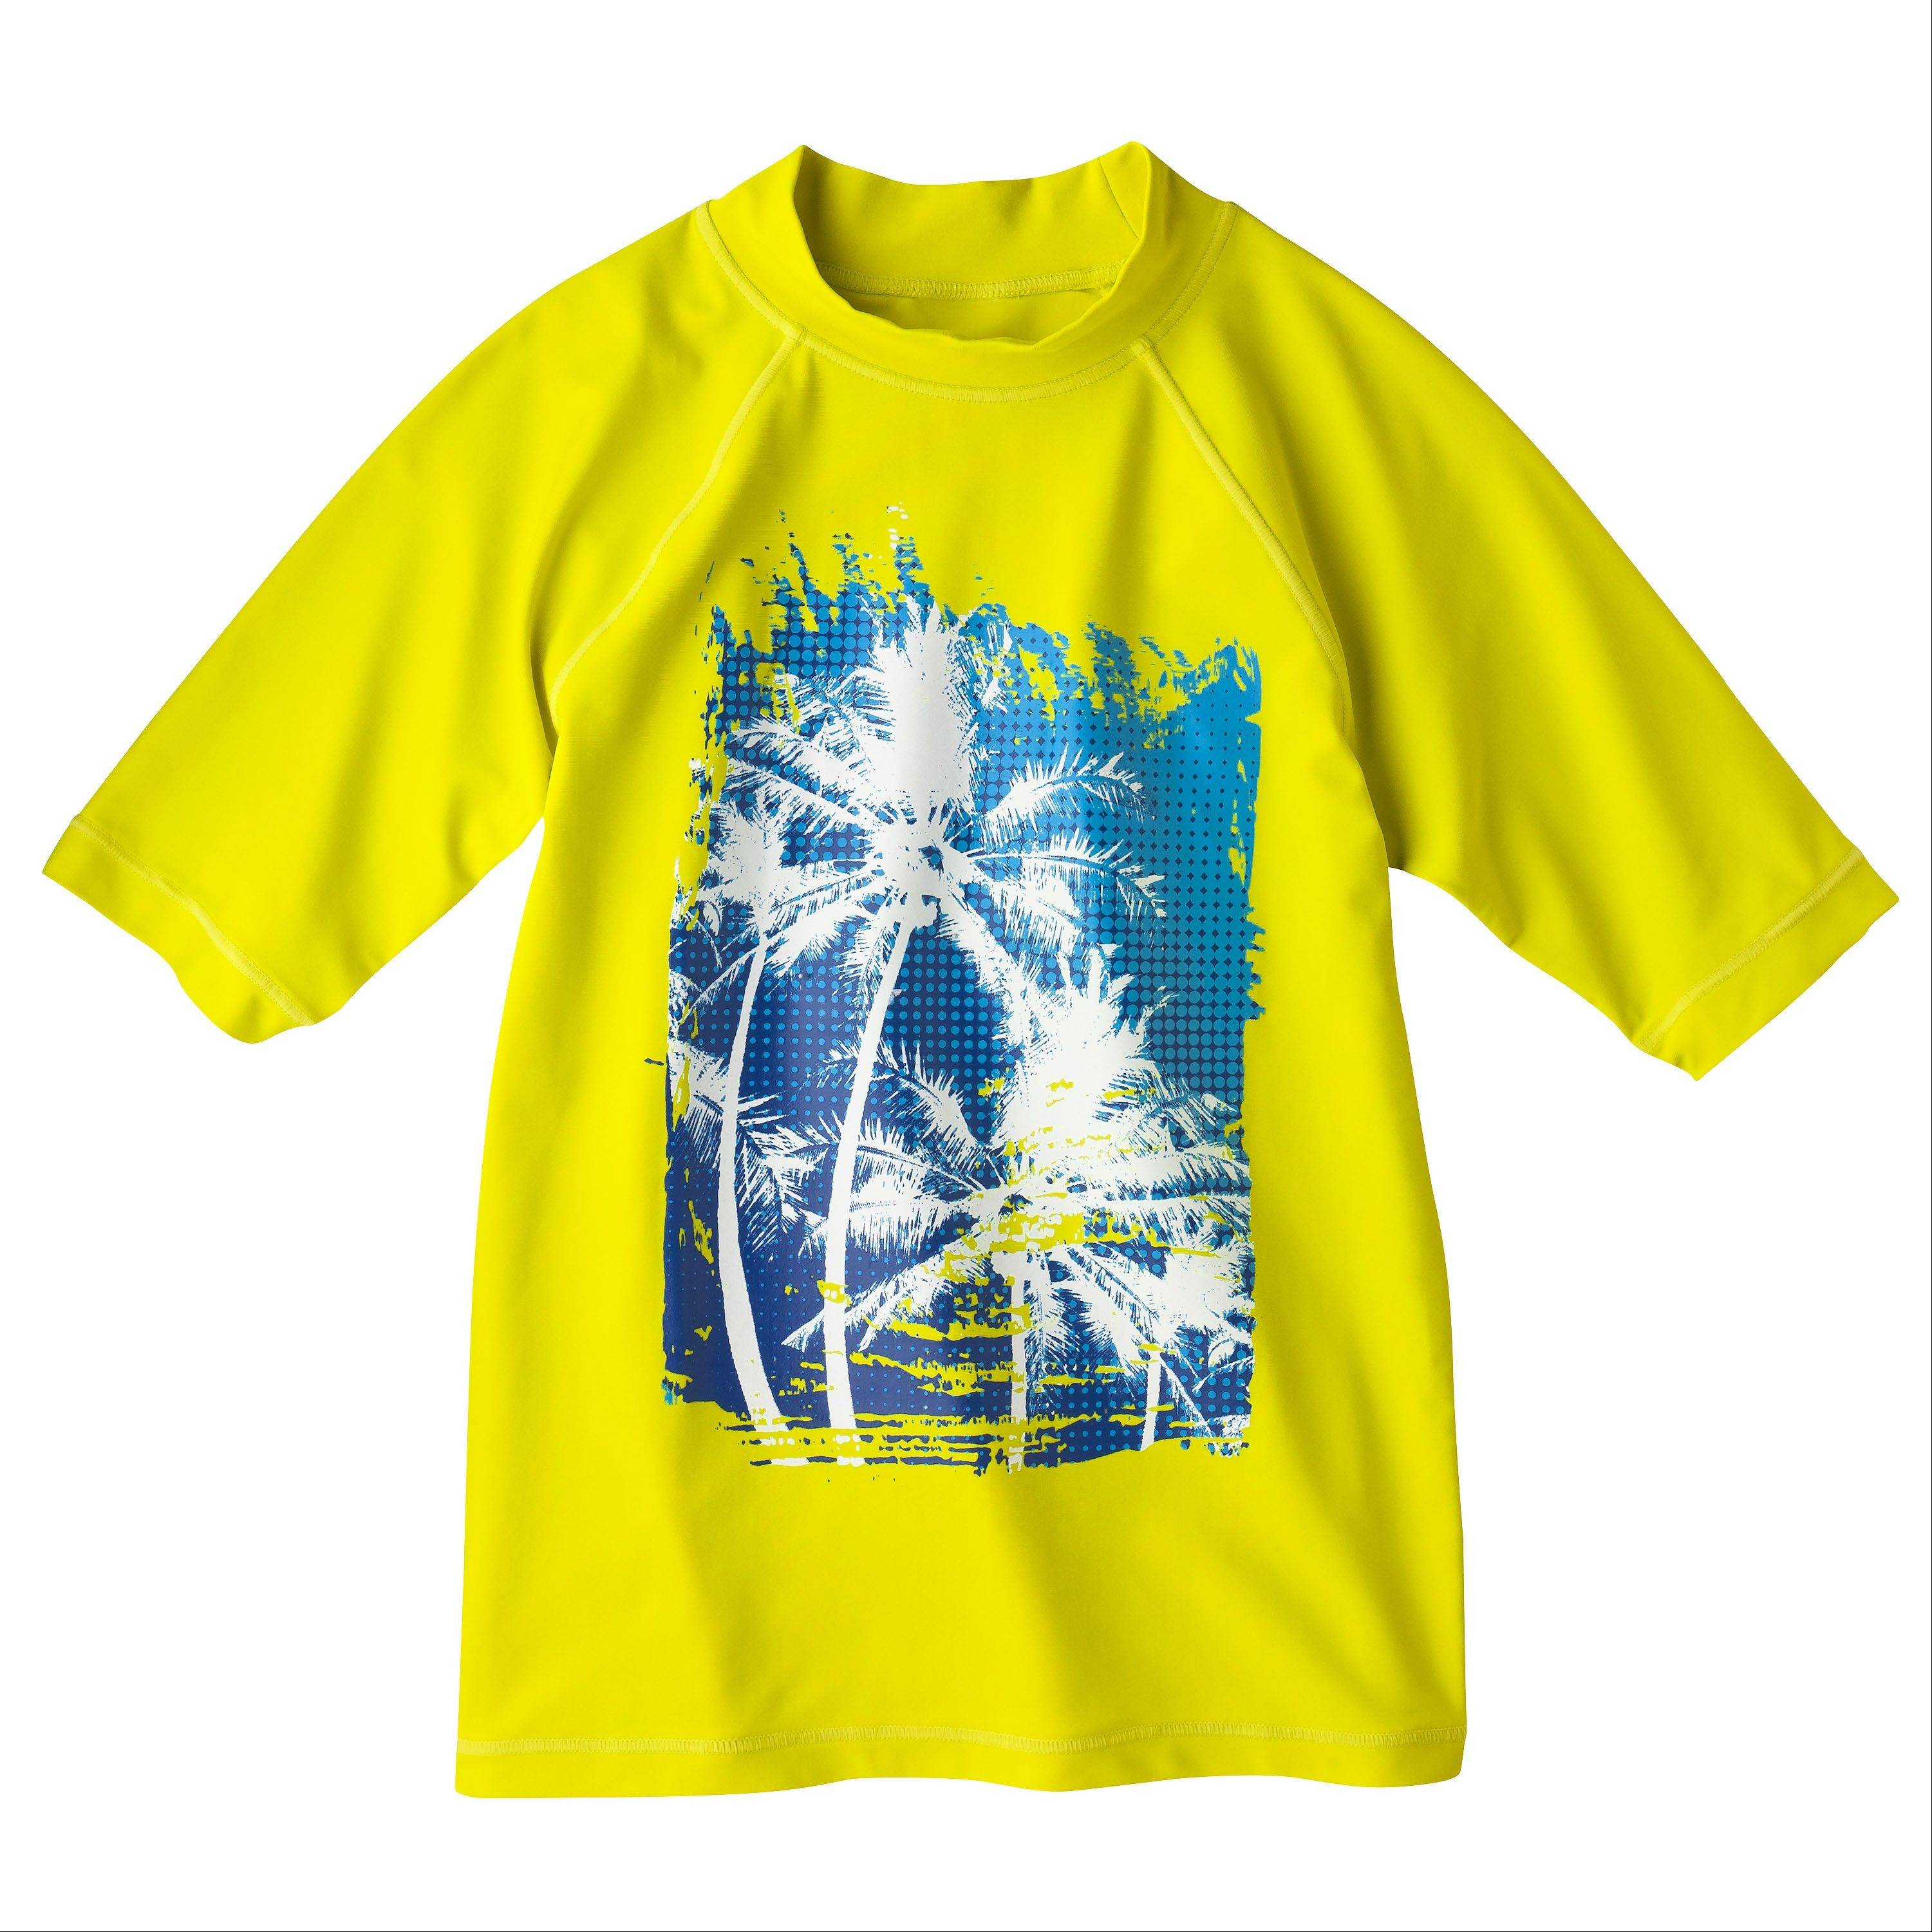 A Cherokee Boys' Rashguard, $12.99, Target, paired with up & up Kids' Sunscreen Broad Spectrum SPF 50 Spray, $5.79, Target, will keep him fresh, sun-protected and moving freely.